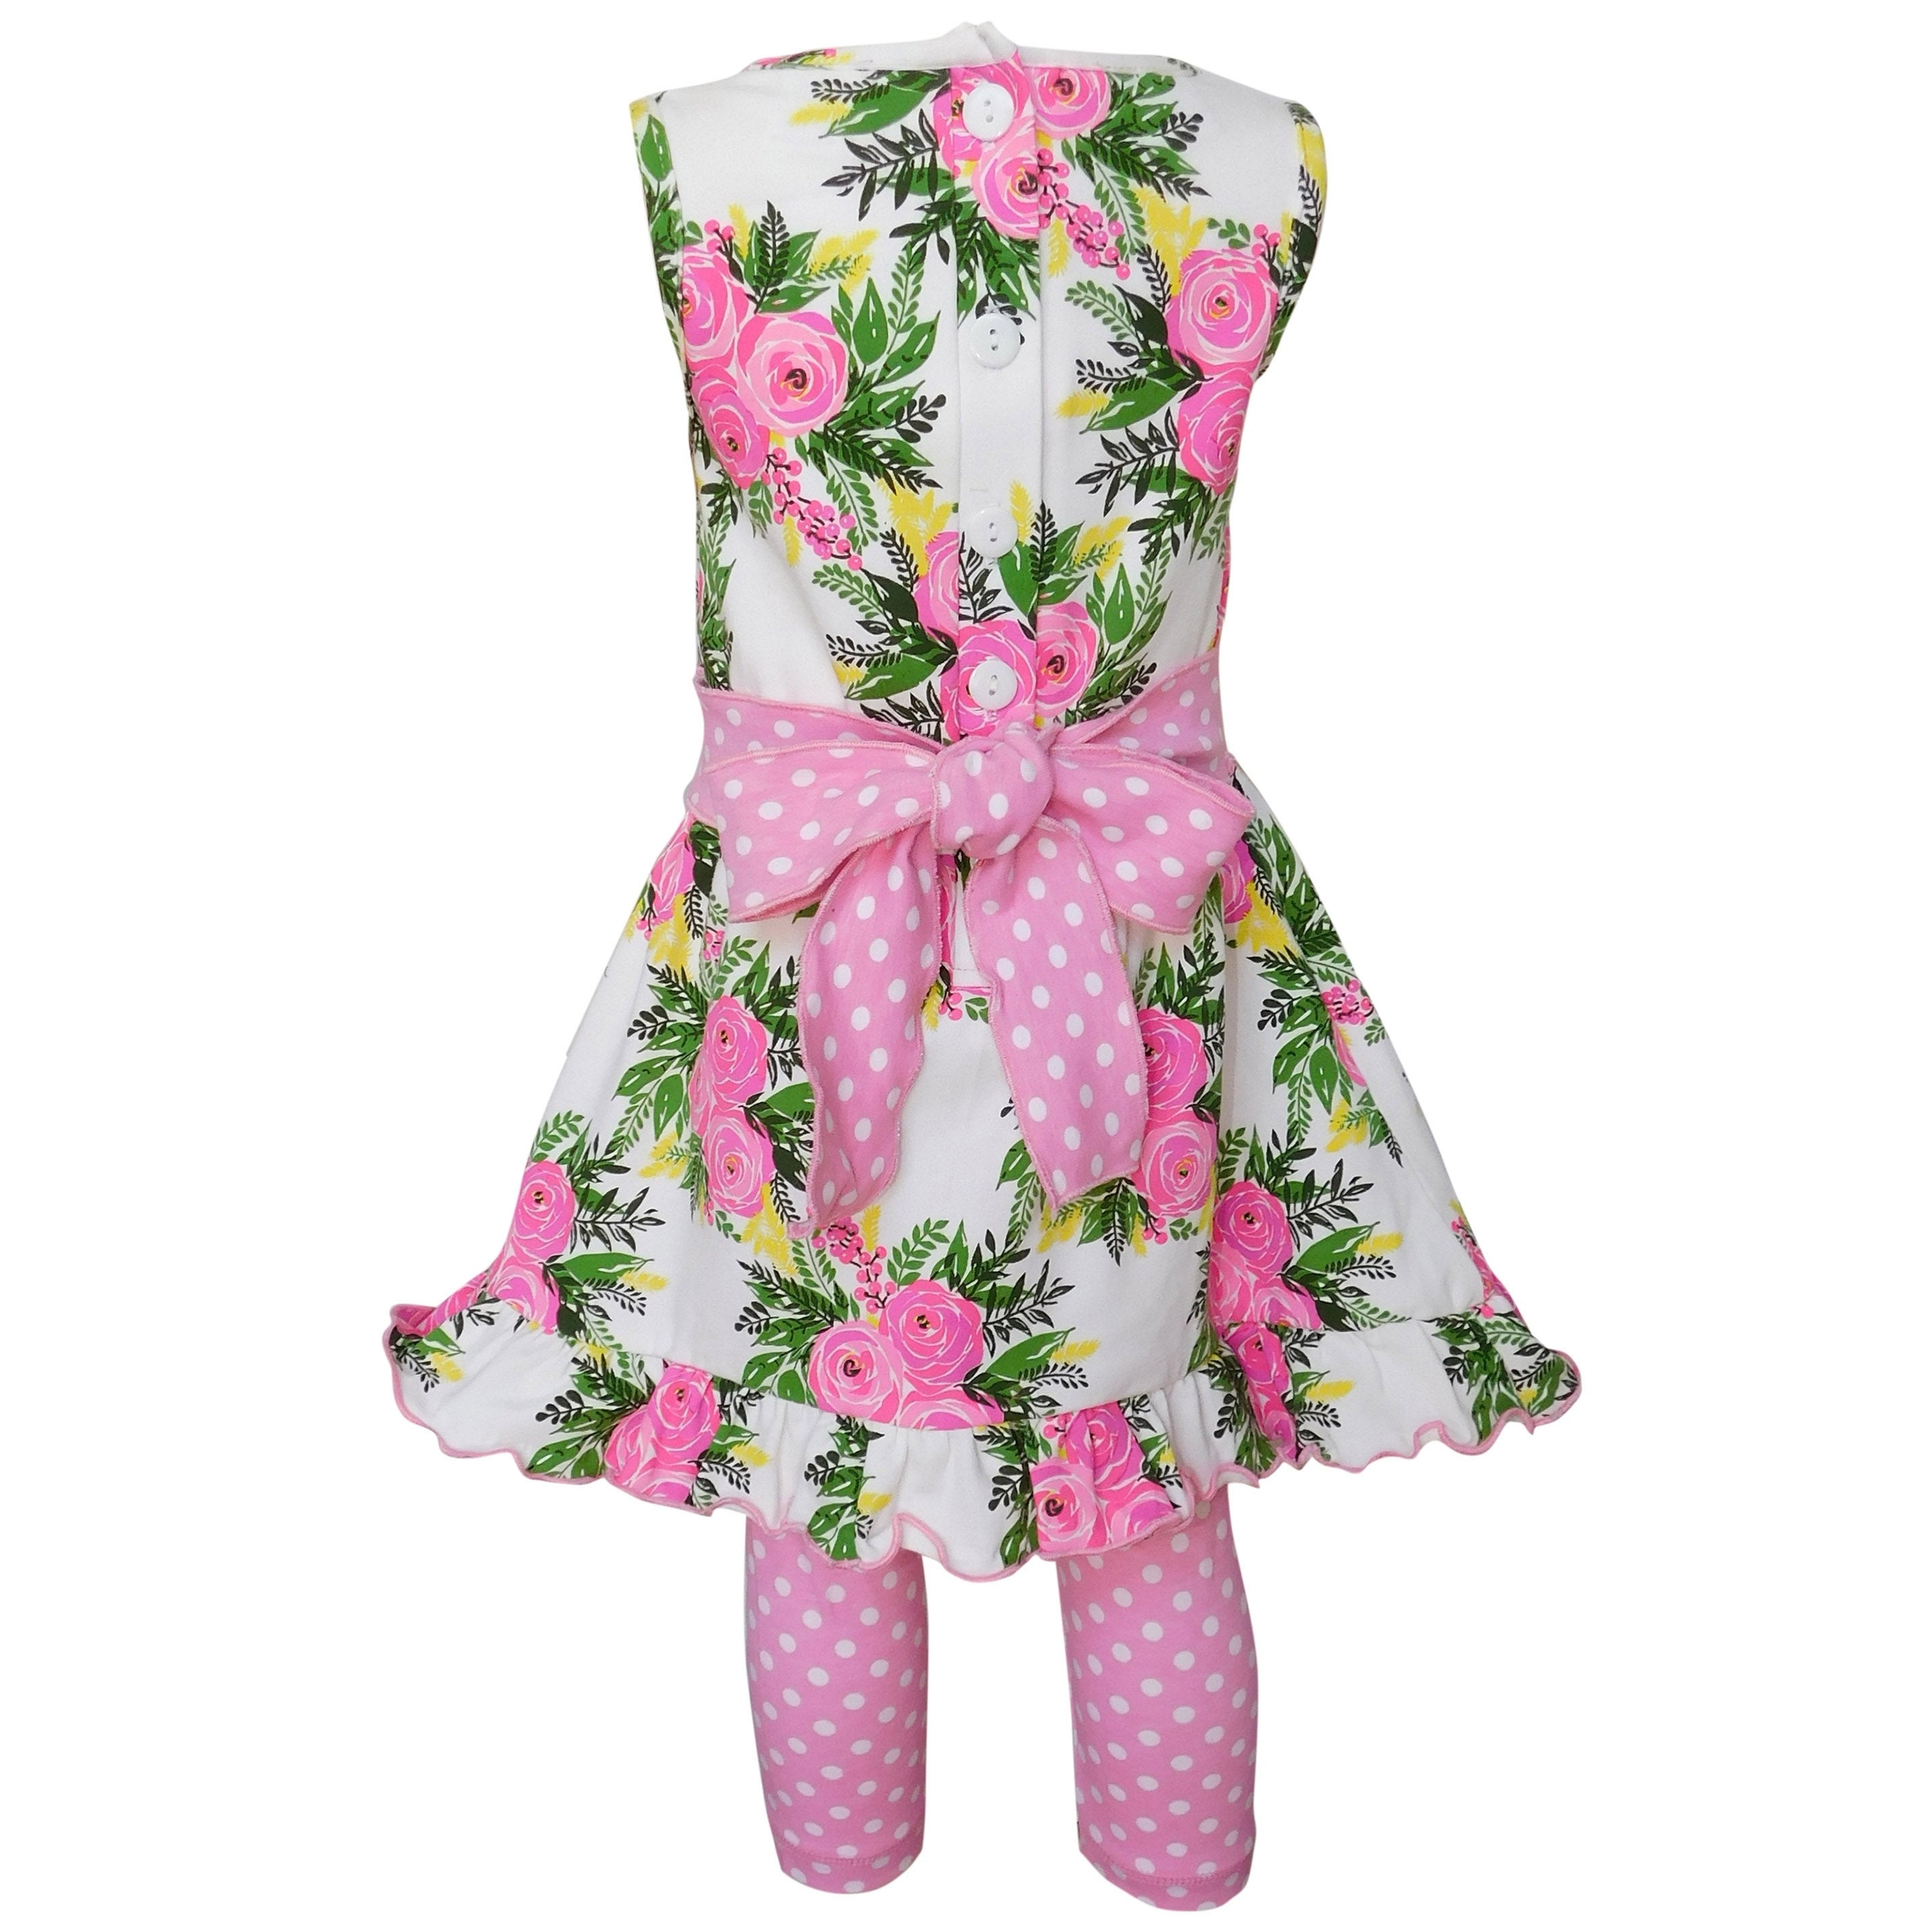 7e14112a4 Shop Annloren Girls Shabby Floral Dress and Capri Outfit - On Sale - Free  Shipping On Orders Over $45 - Overstock - 26265292